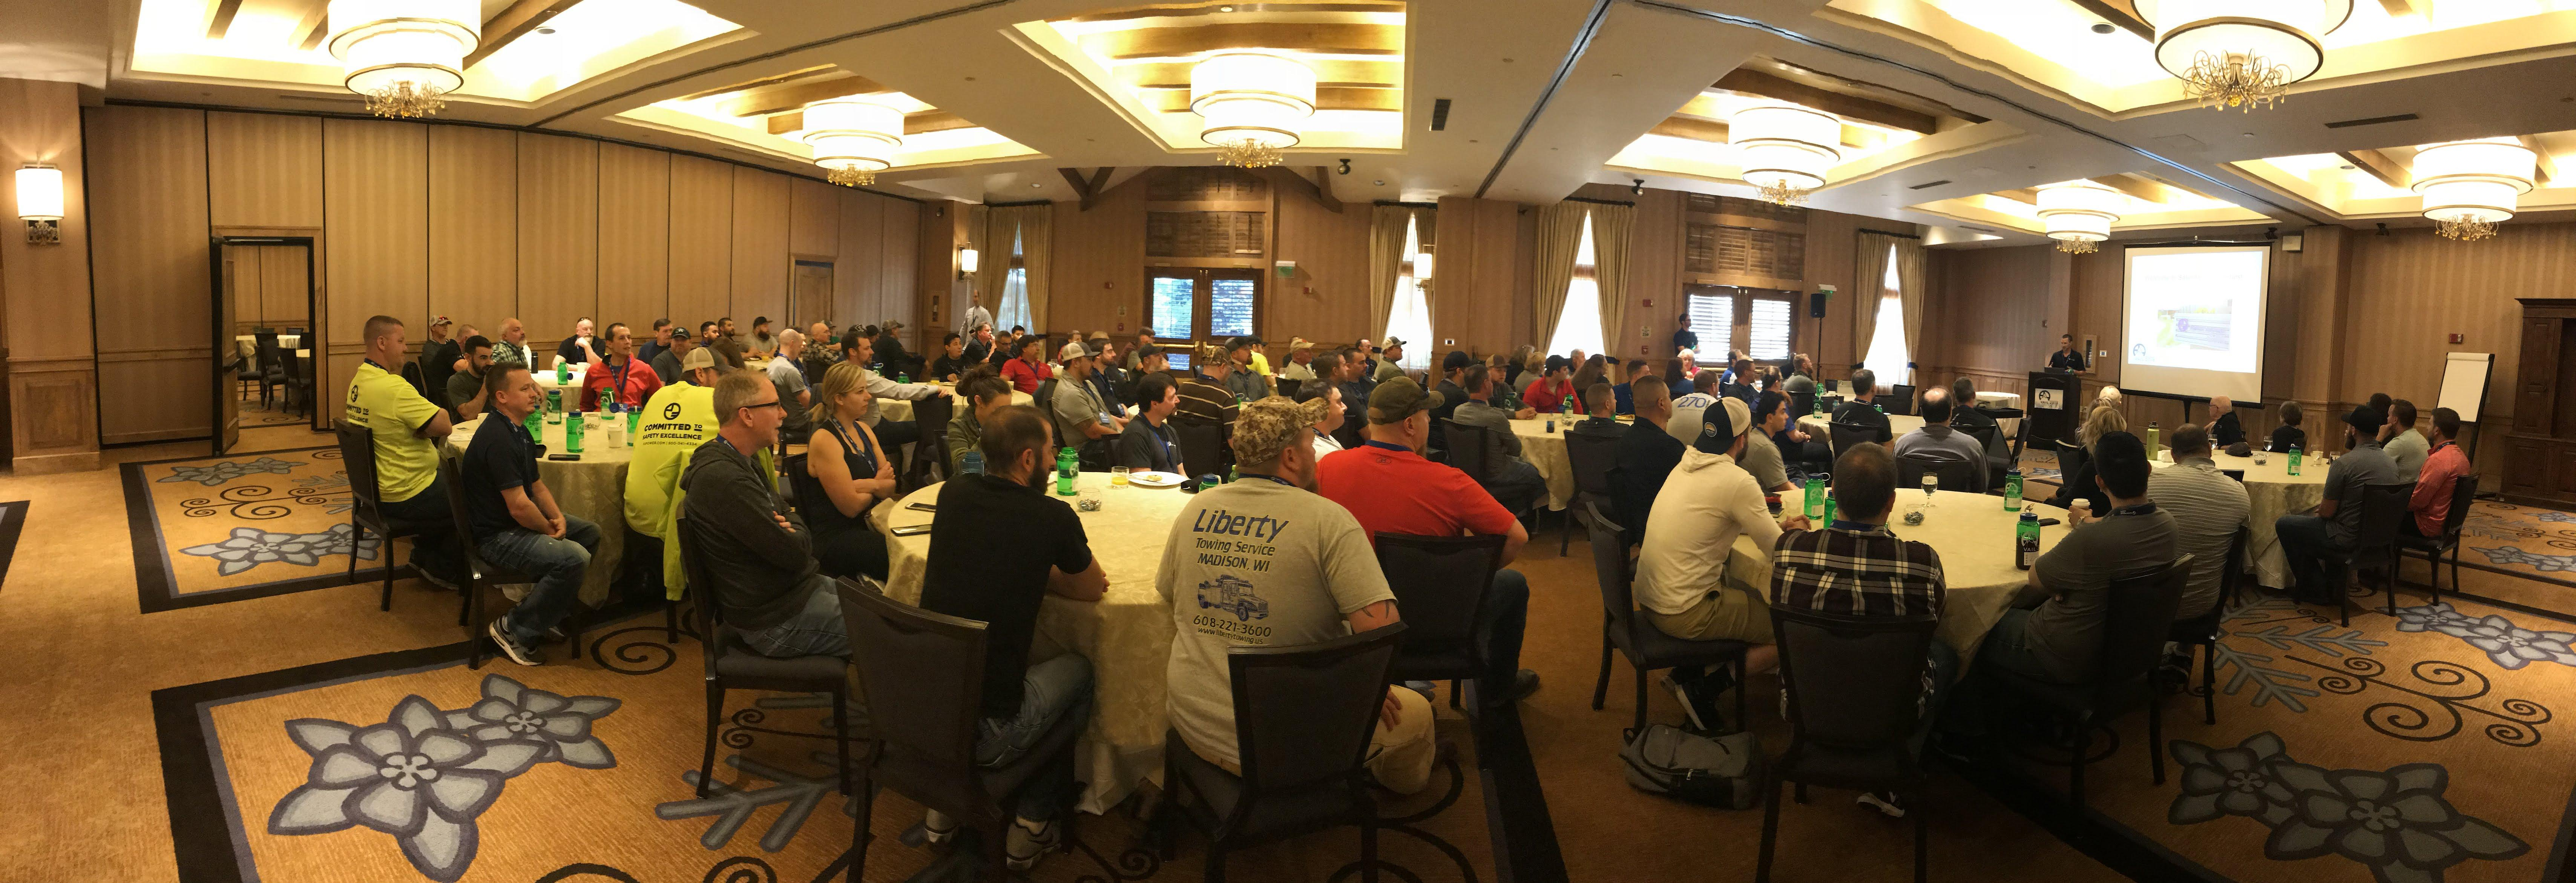 Pjpower Vail Group Meeting